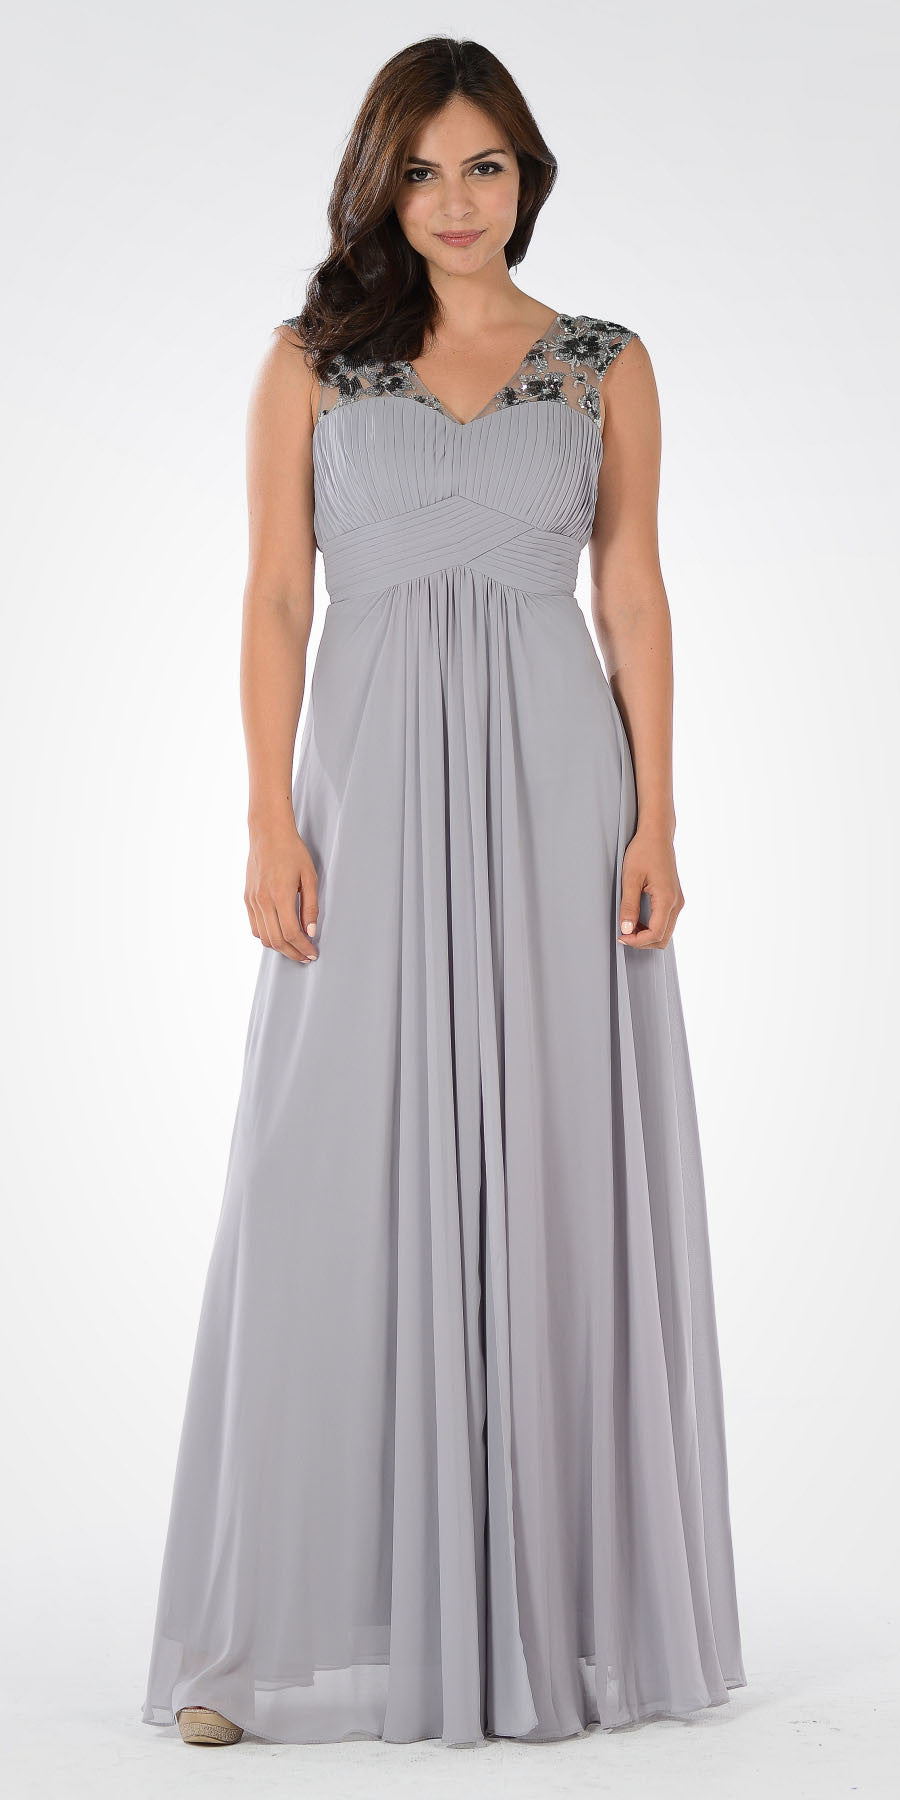 V-Neck Embellished Pleated Bodice Empire Waist Formal Dress Long Gray